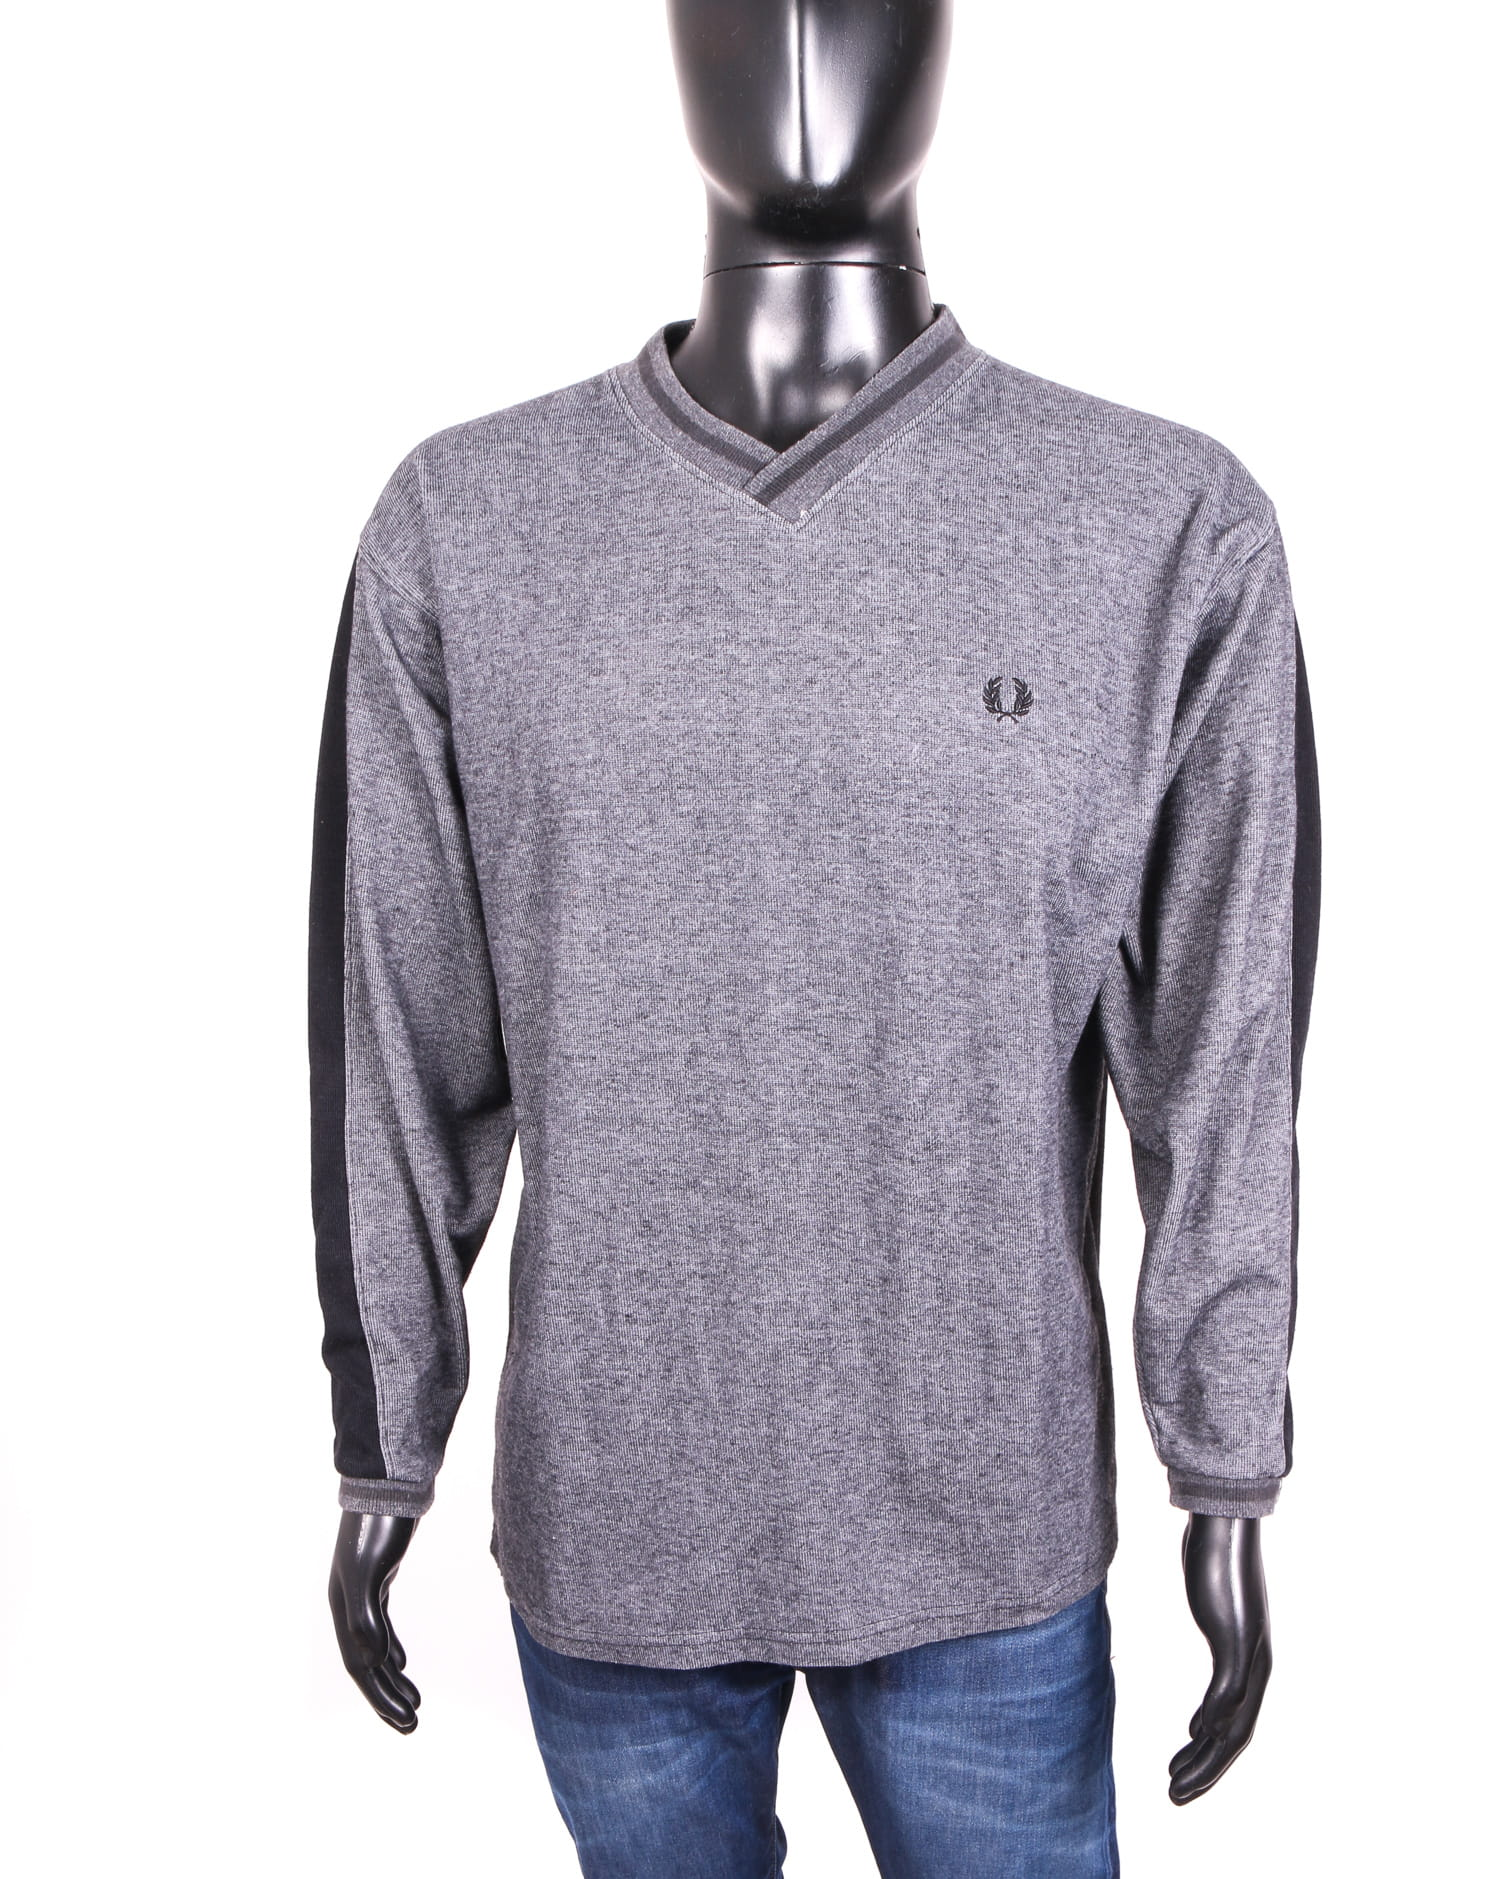 Fred Perry Needlepunch V-Neck Pullover Sweater Men/'s Sweatshirt Pacific Marl